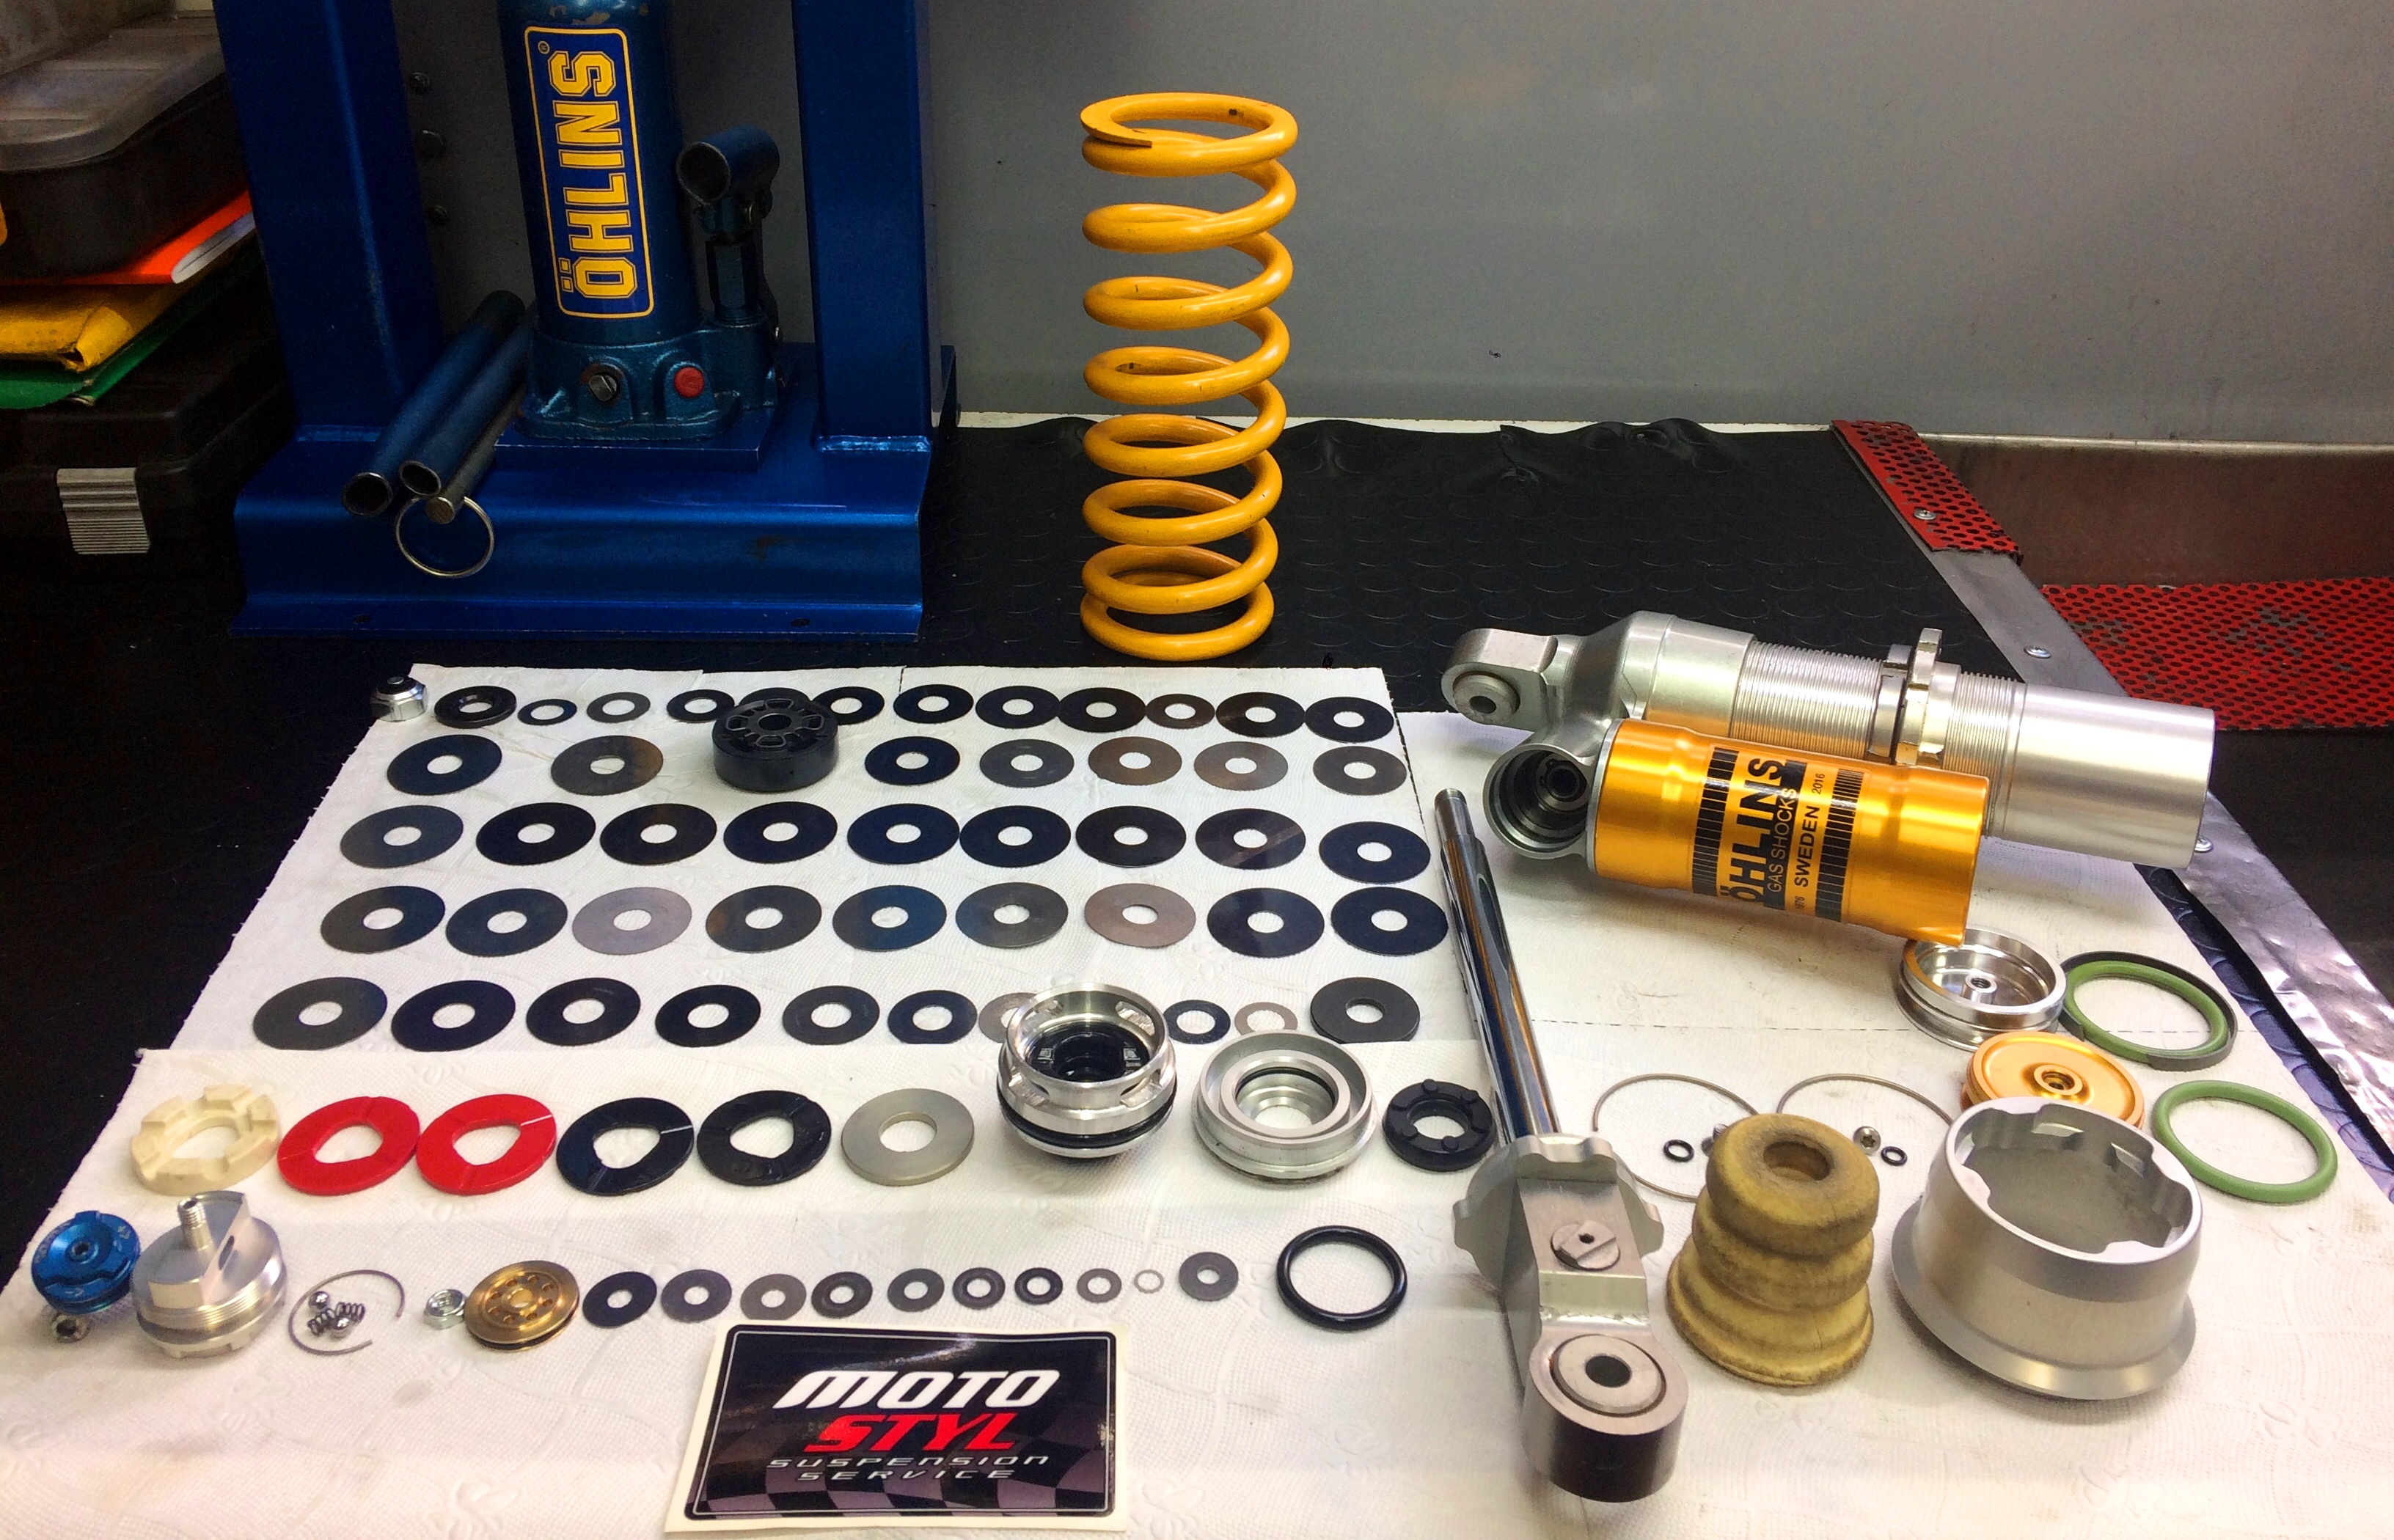 ohlins suspension mx-service-thessaloniki-motostyl-Κωνσταντίνος-Αραμπατζής